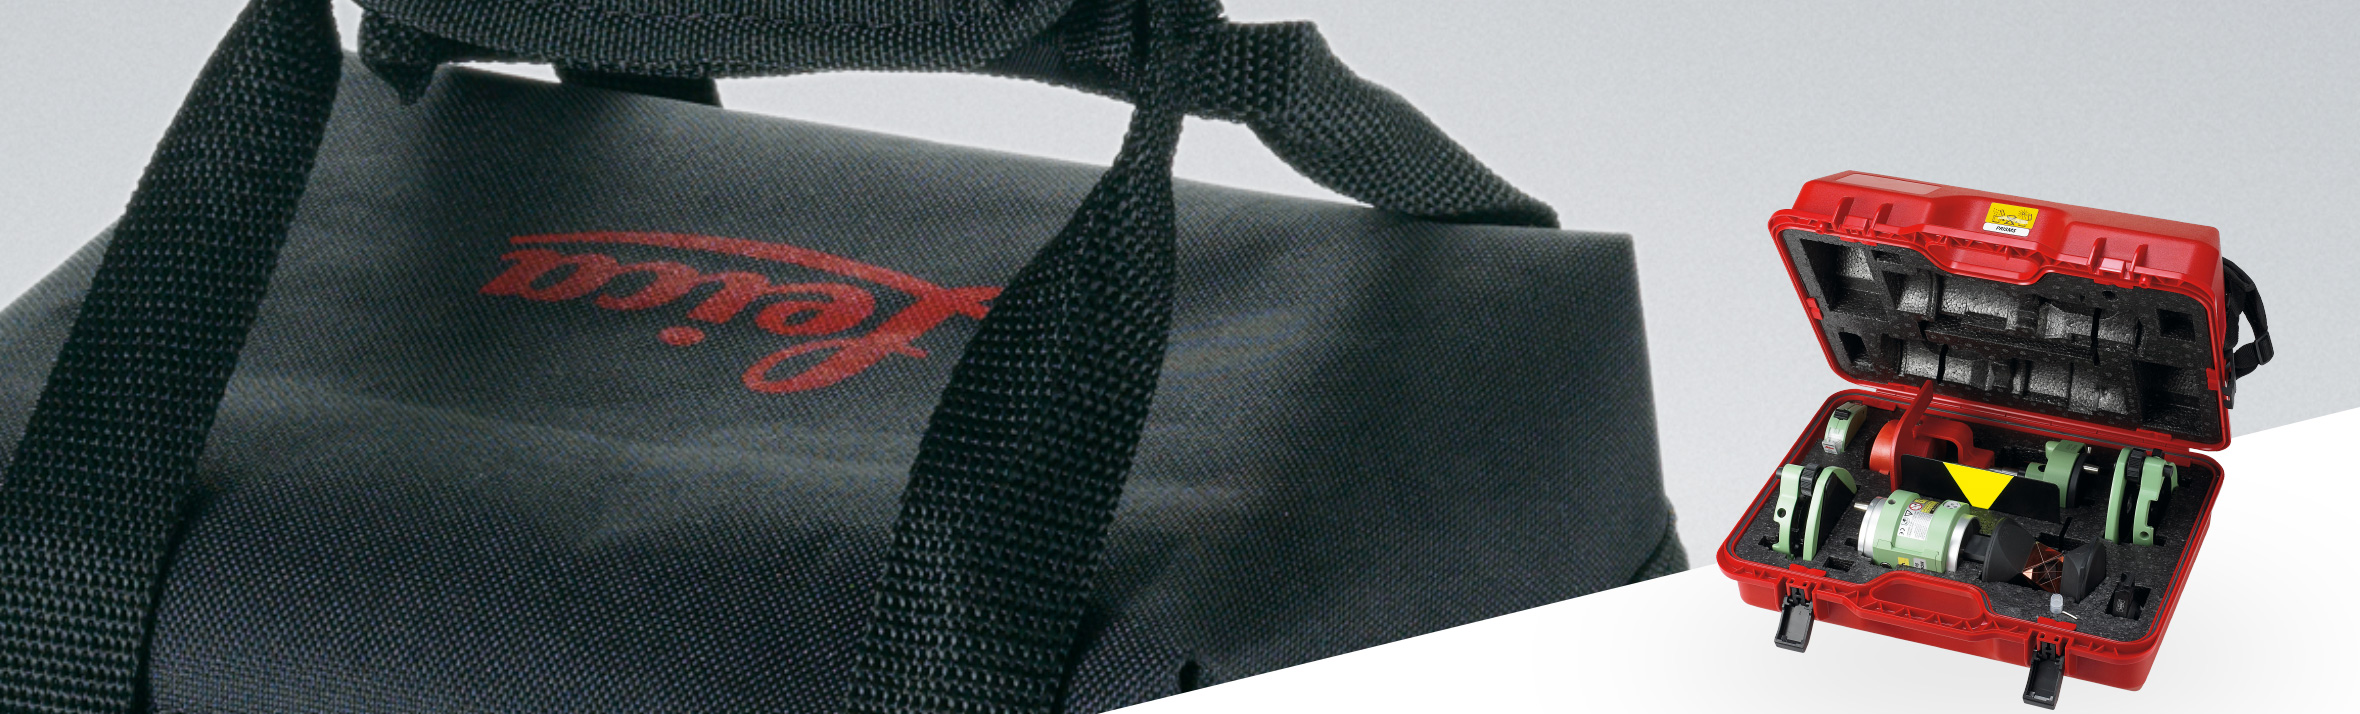 Leica Bags and Containers